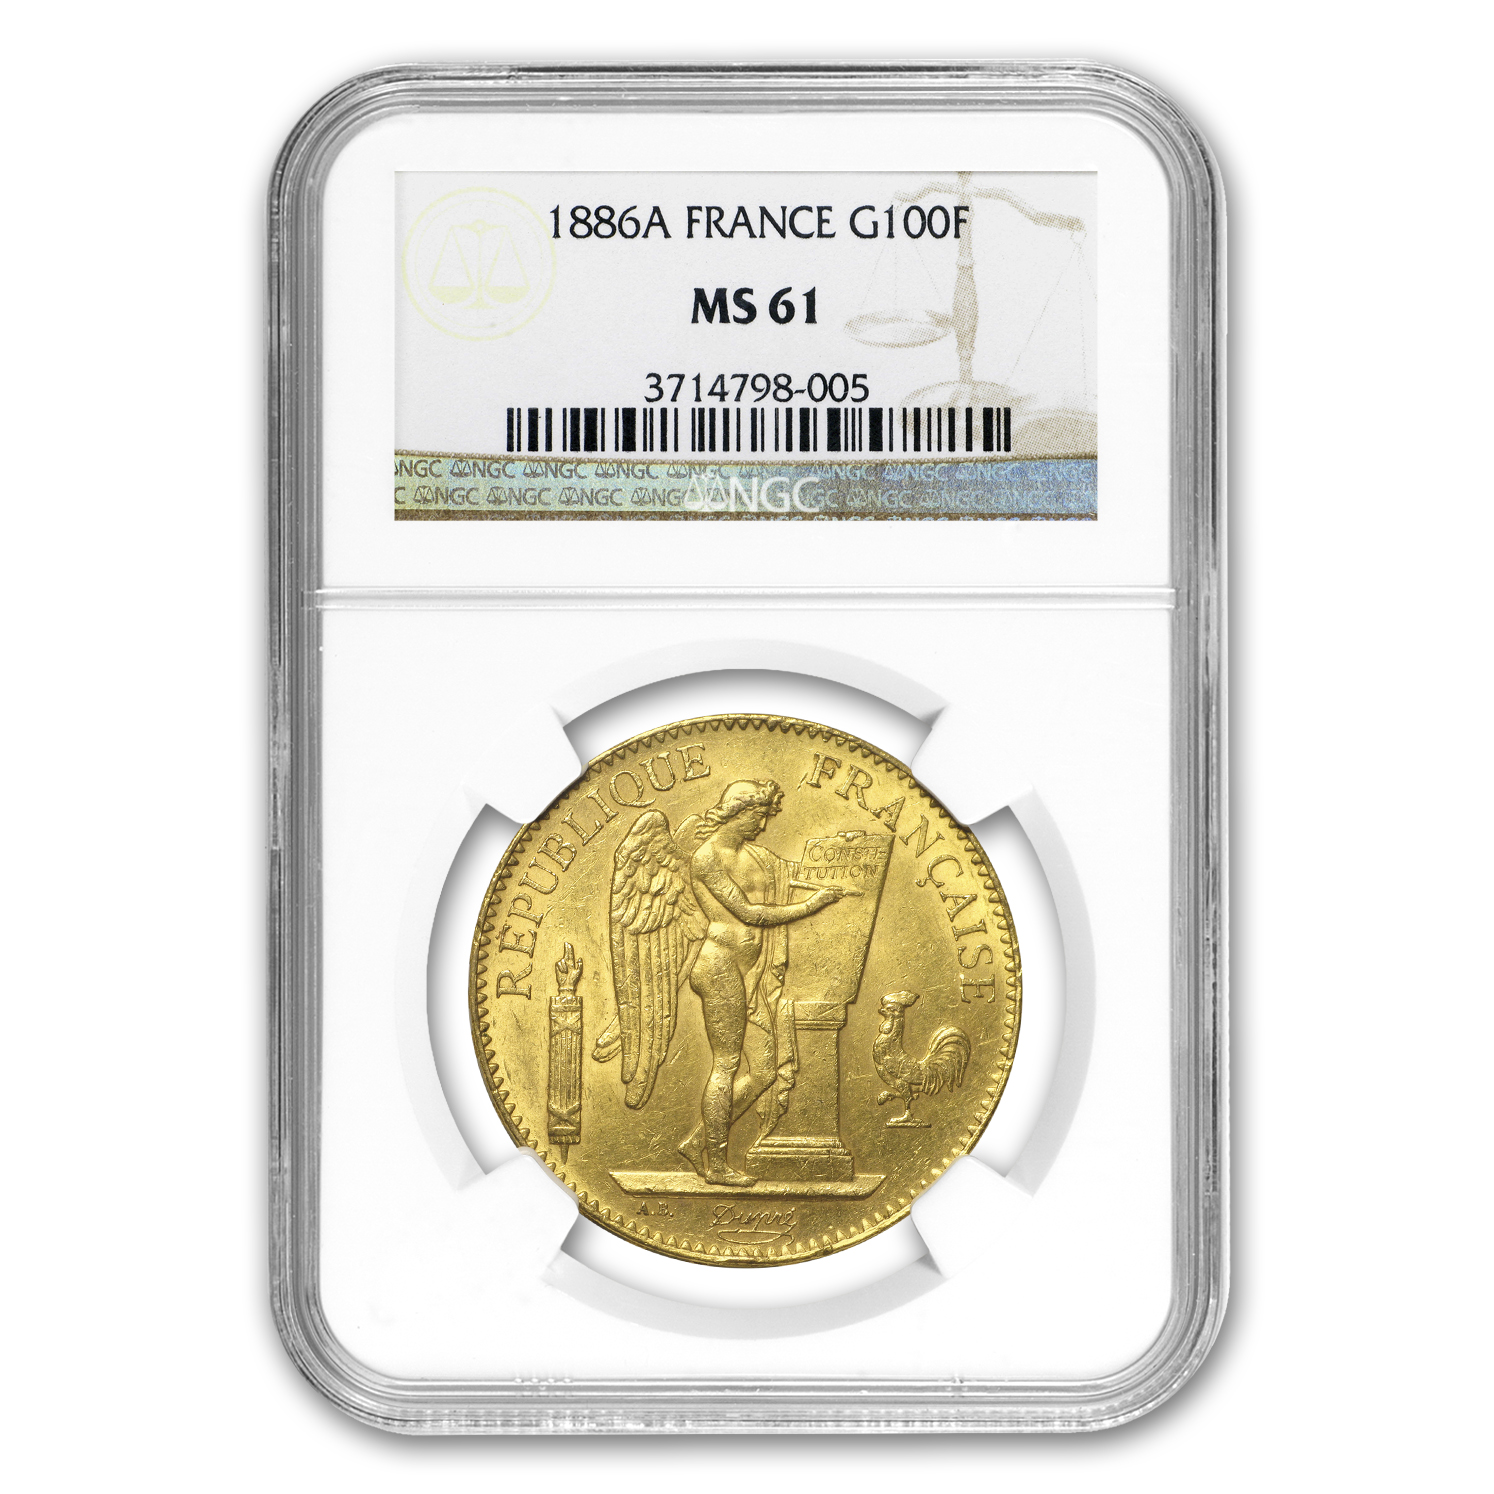 1878-1898 France Gold 100 Francs Lucky Angel MS-61 NGC